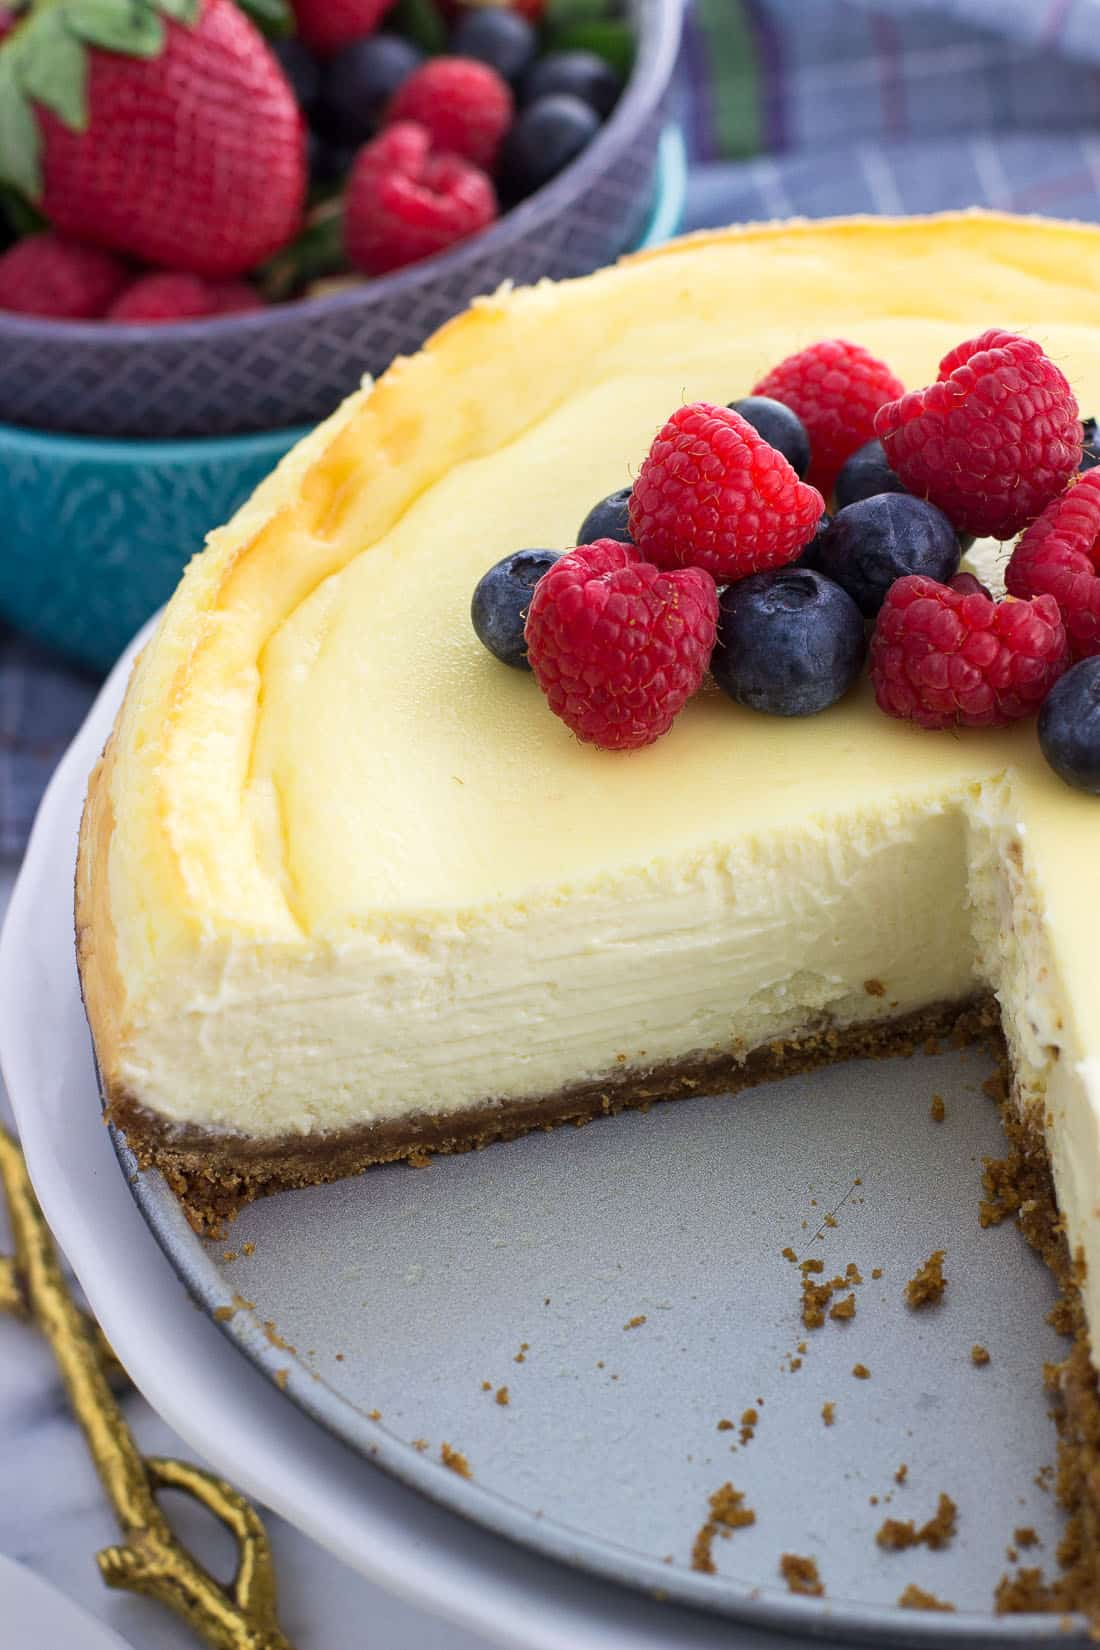 Cheesecake on the base of a springform pan with slices cut out